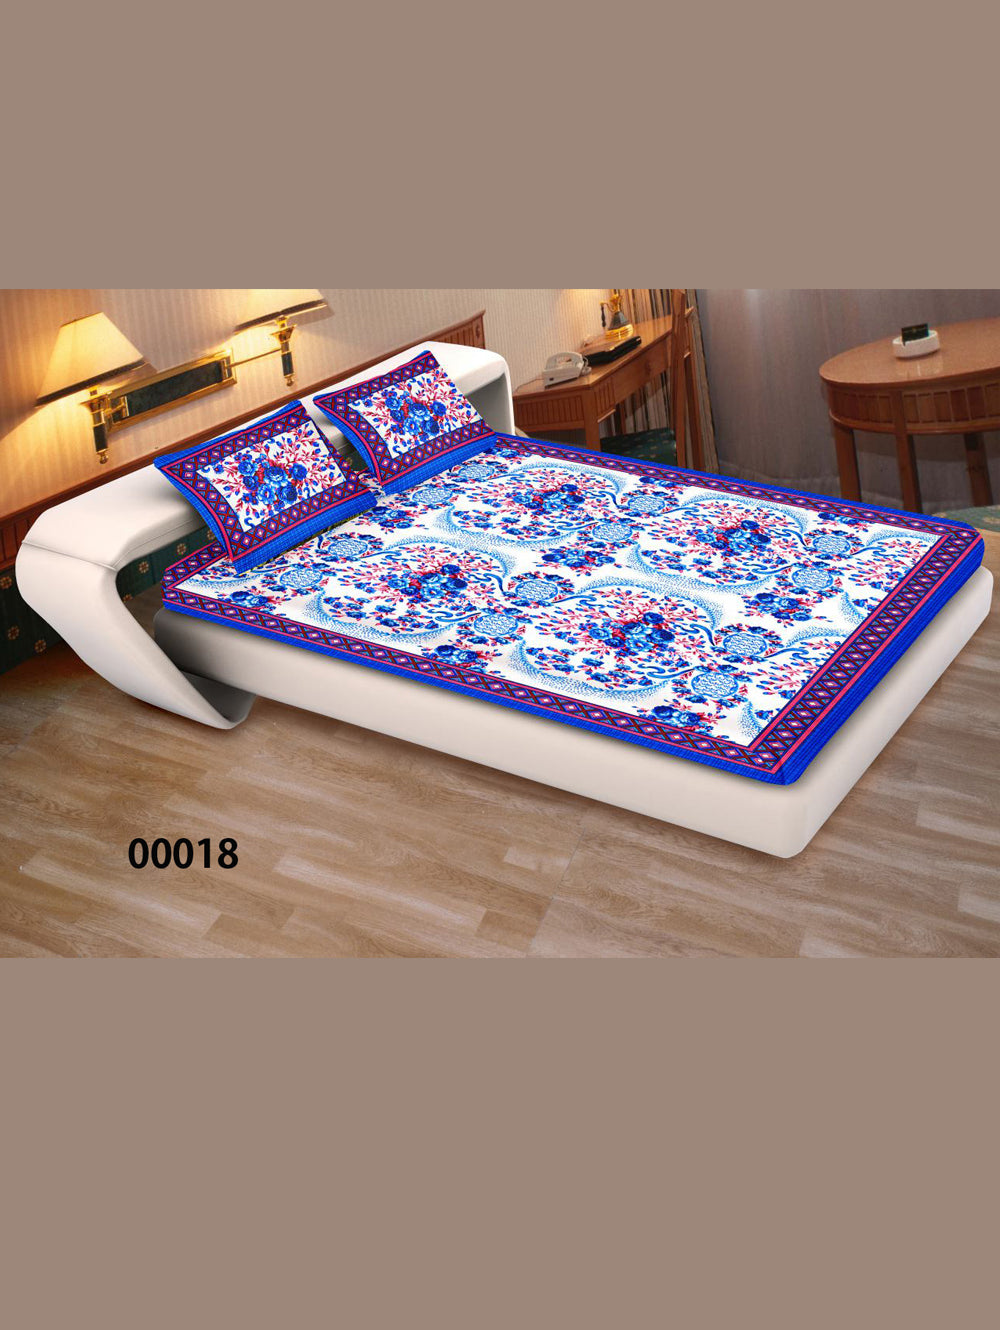 00018SkyBlue and White Ethnic Cotton Queen Size Floral Bedsheet With 2 Pillow Covers